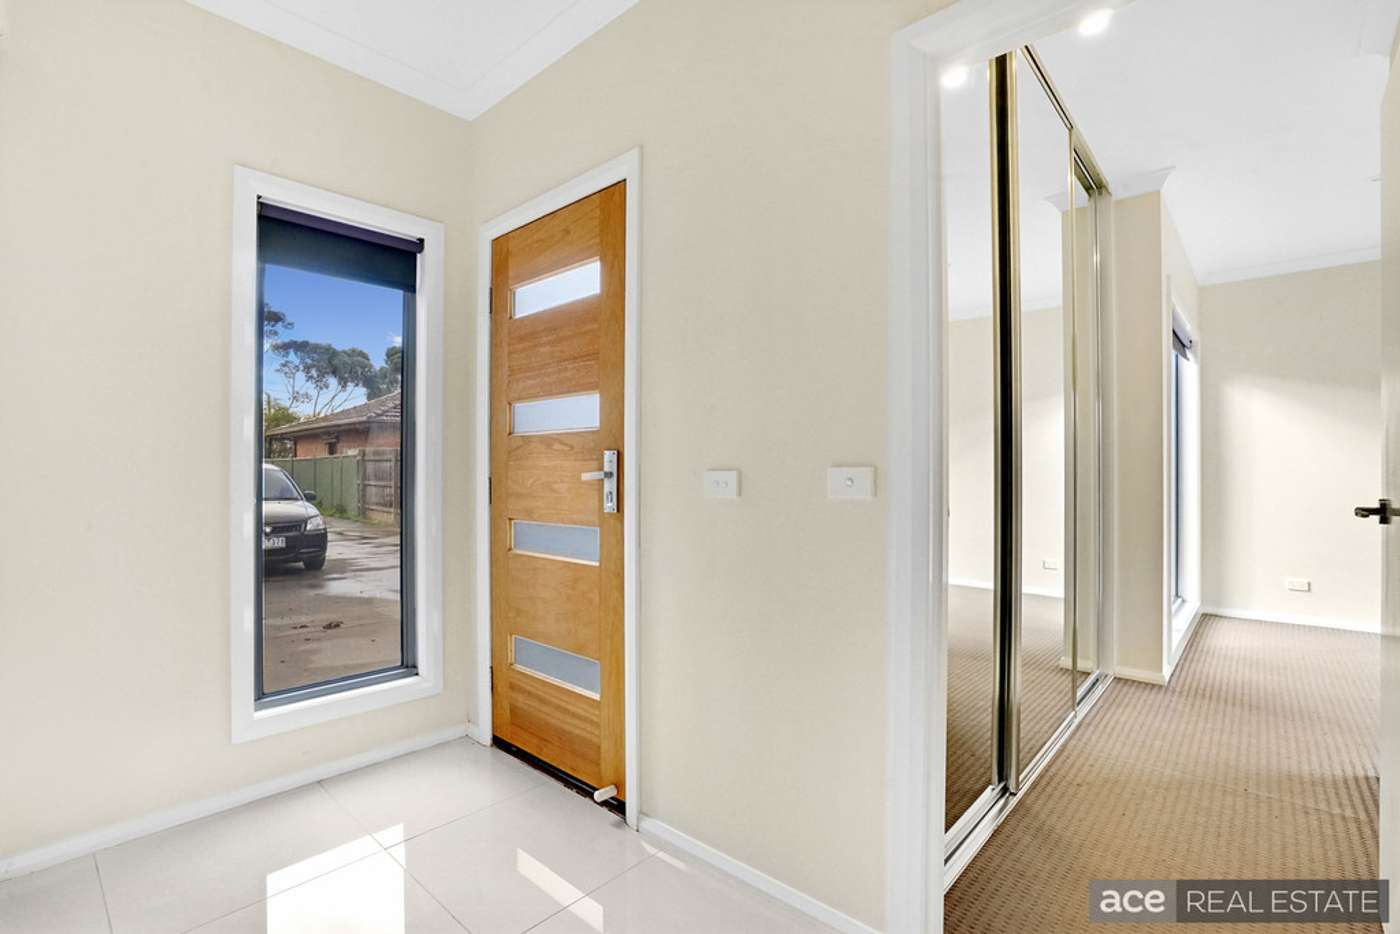 Fifth view of Homely house listing, 3/135 Railway Avenue, Laverton VIC 3028